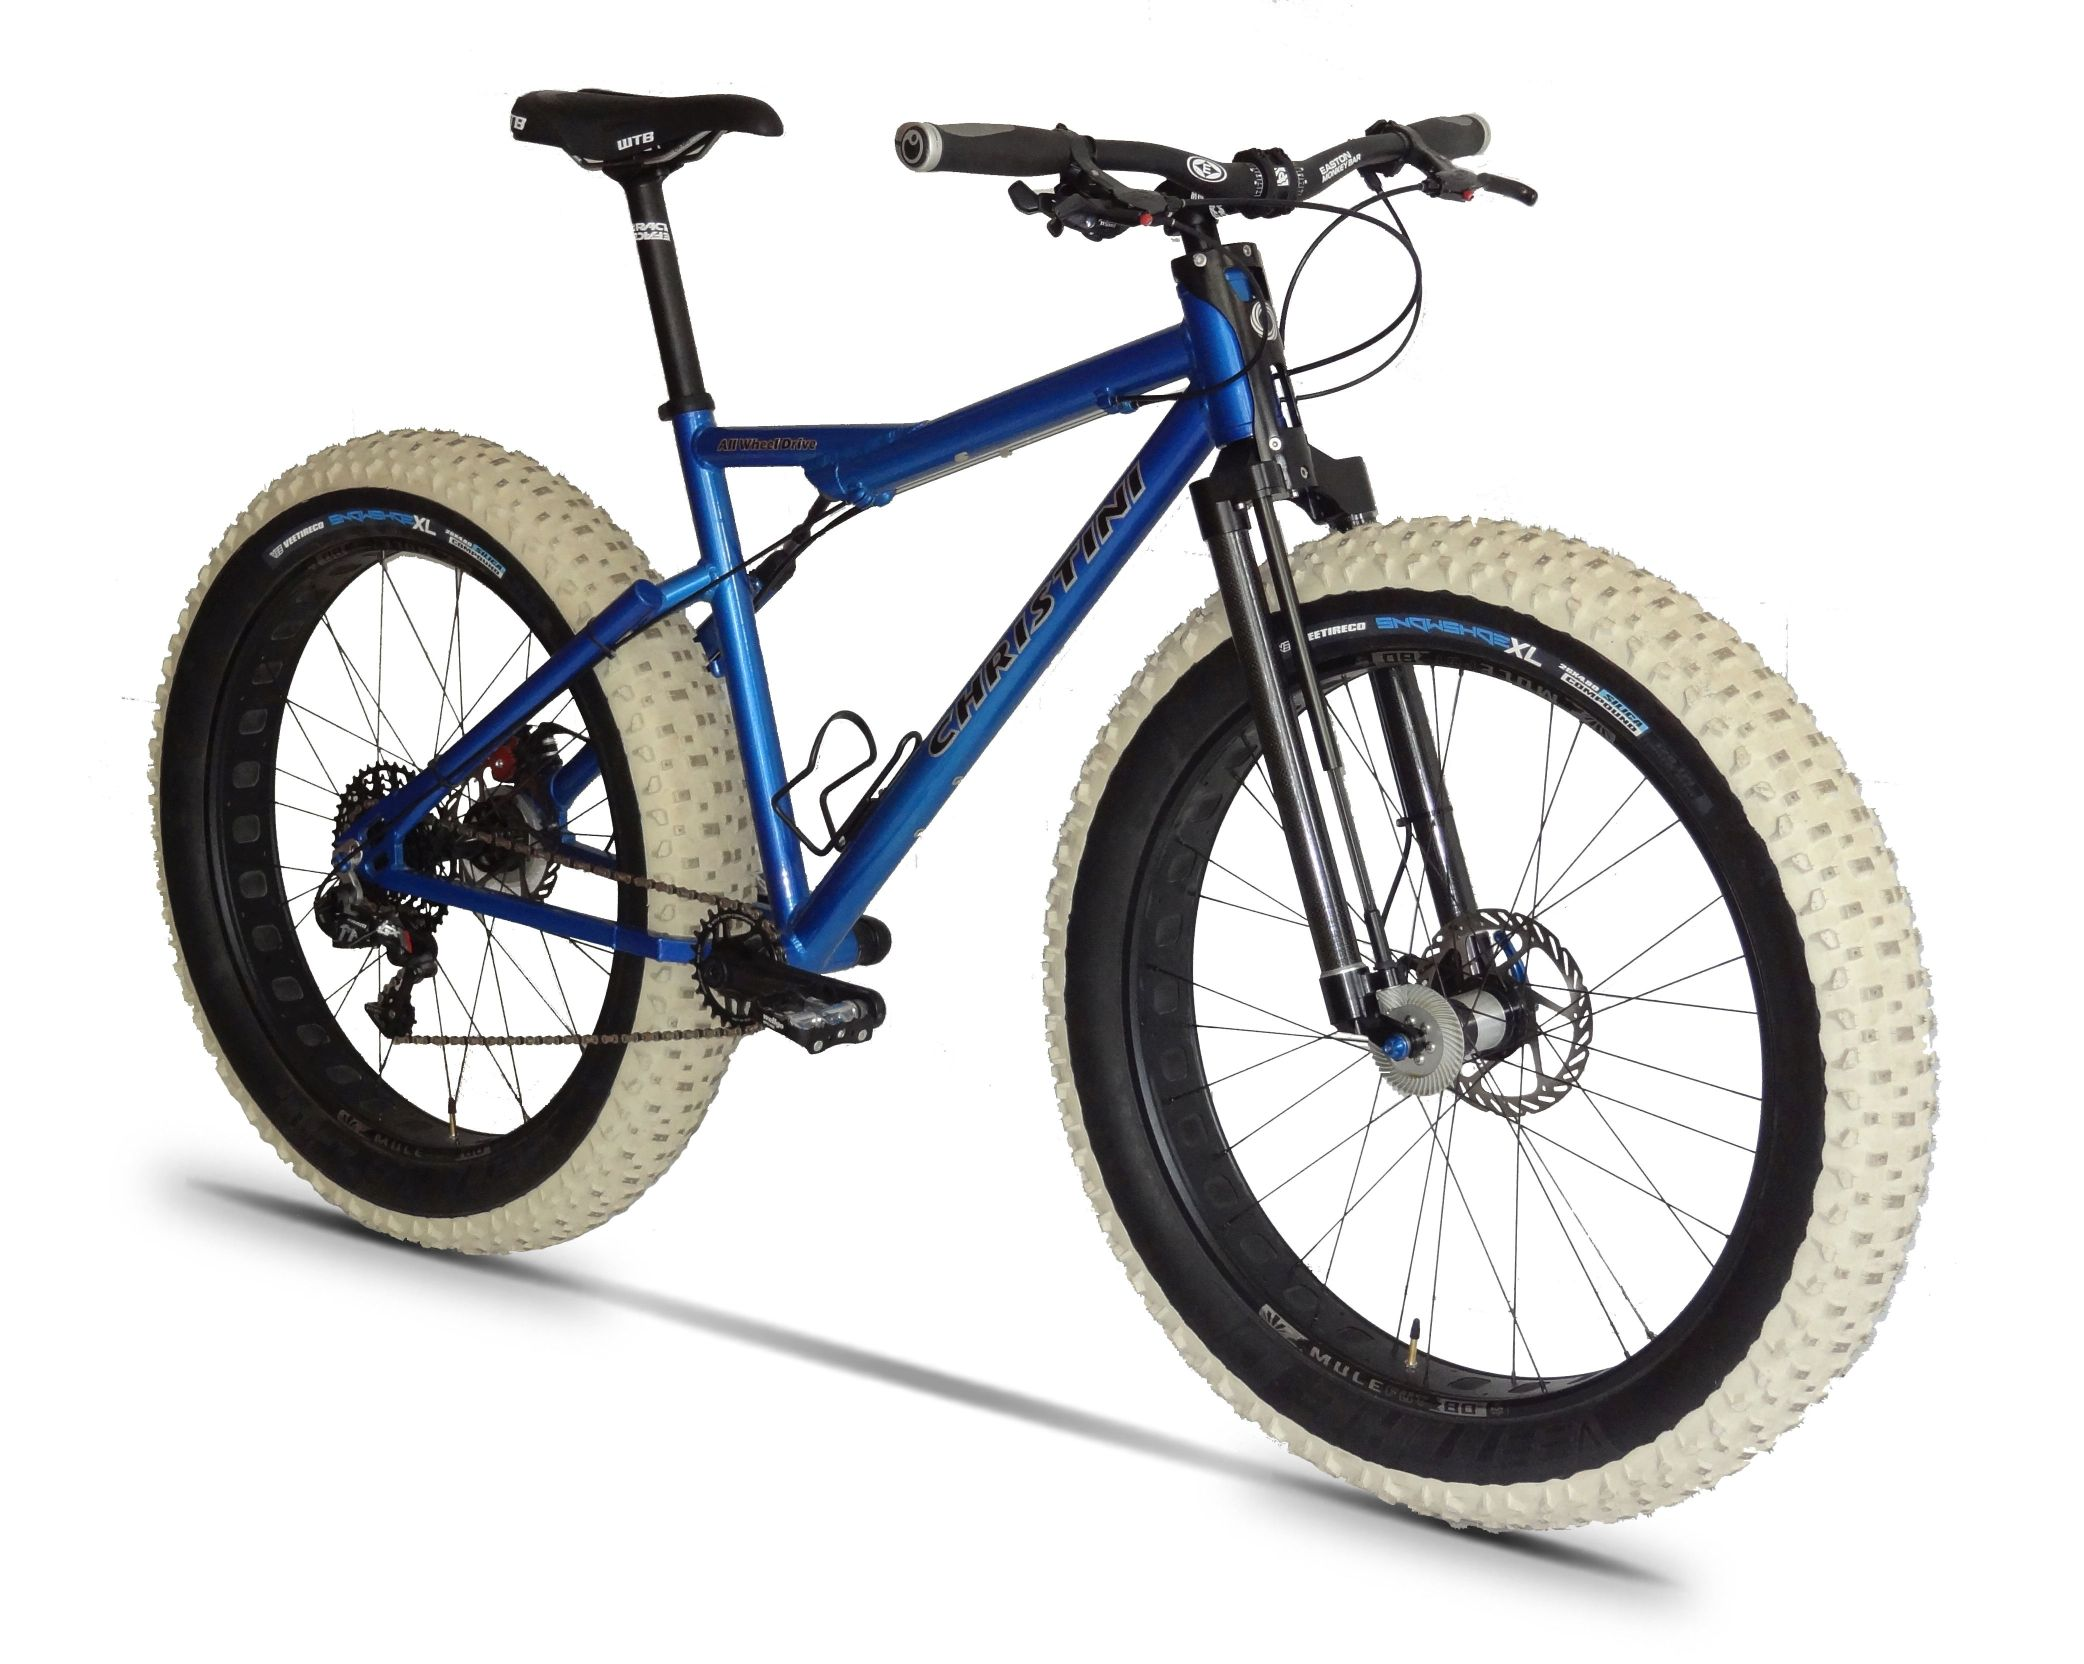 Electric Awd Fat E Bikes Christini All Wheel Drive Bicycles